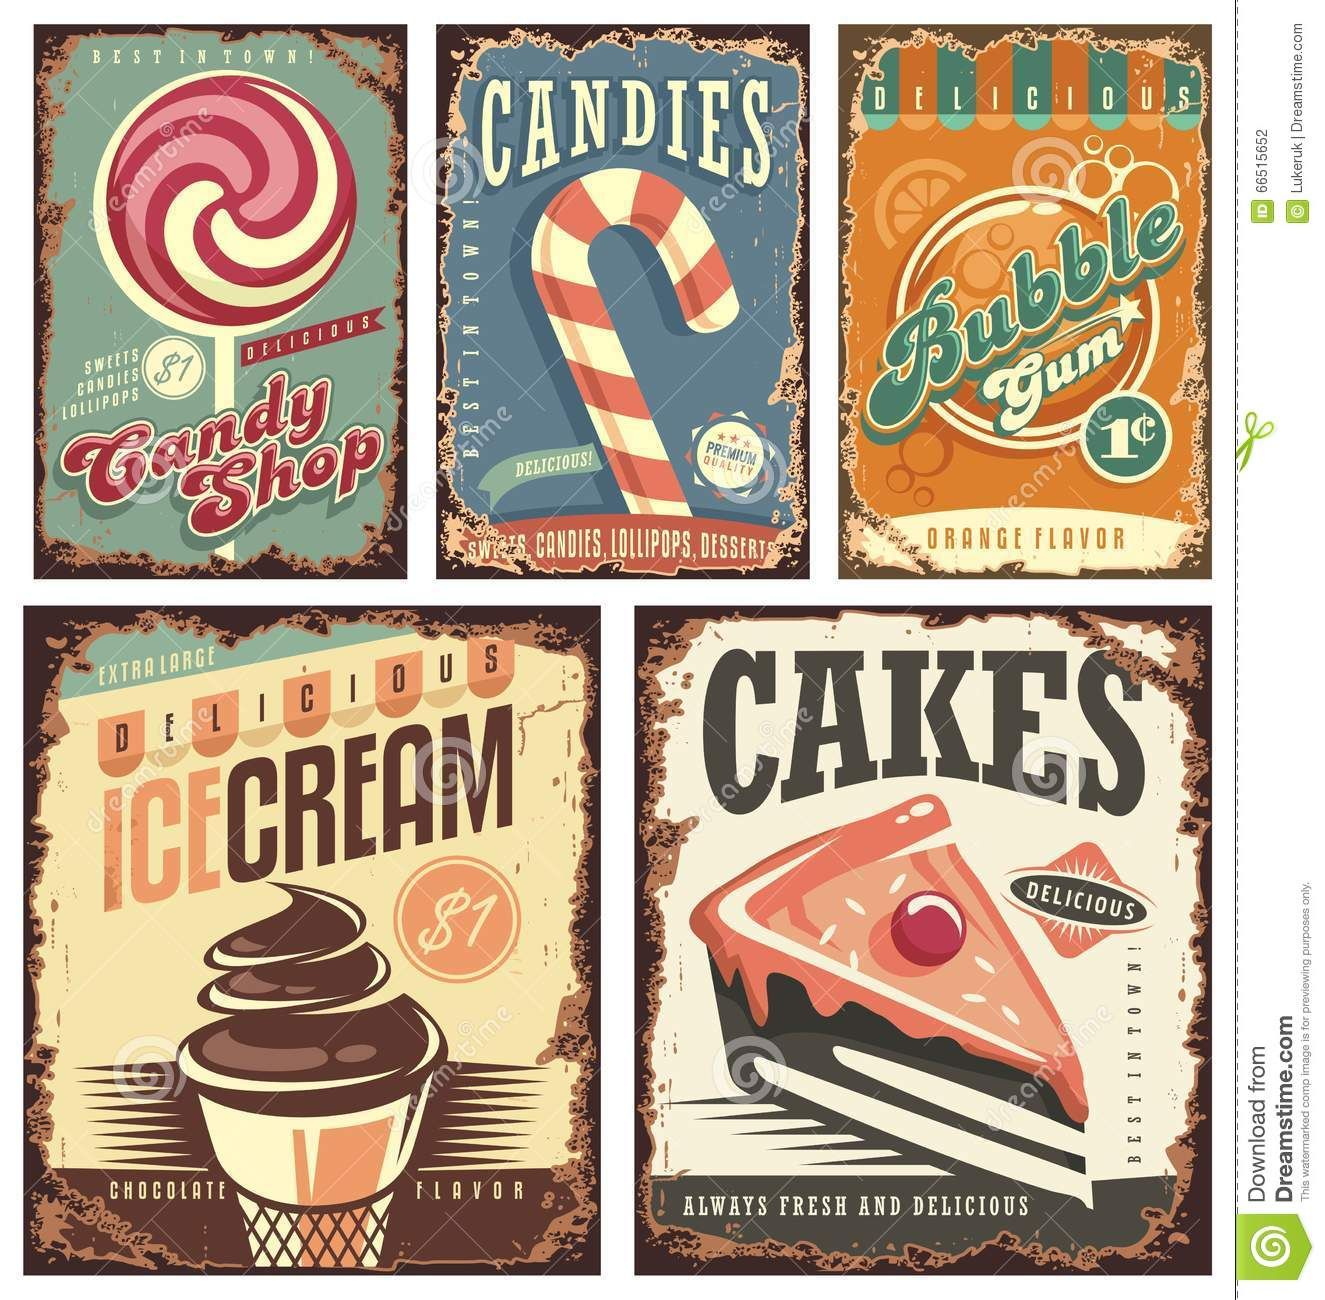 prints art vintage candy poster